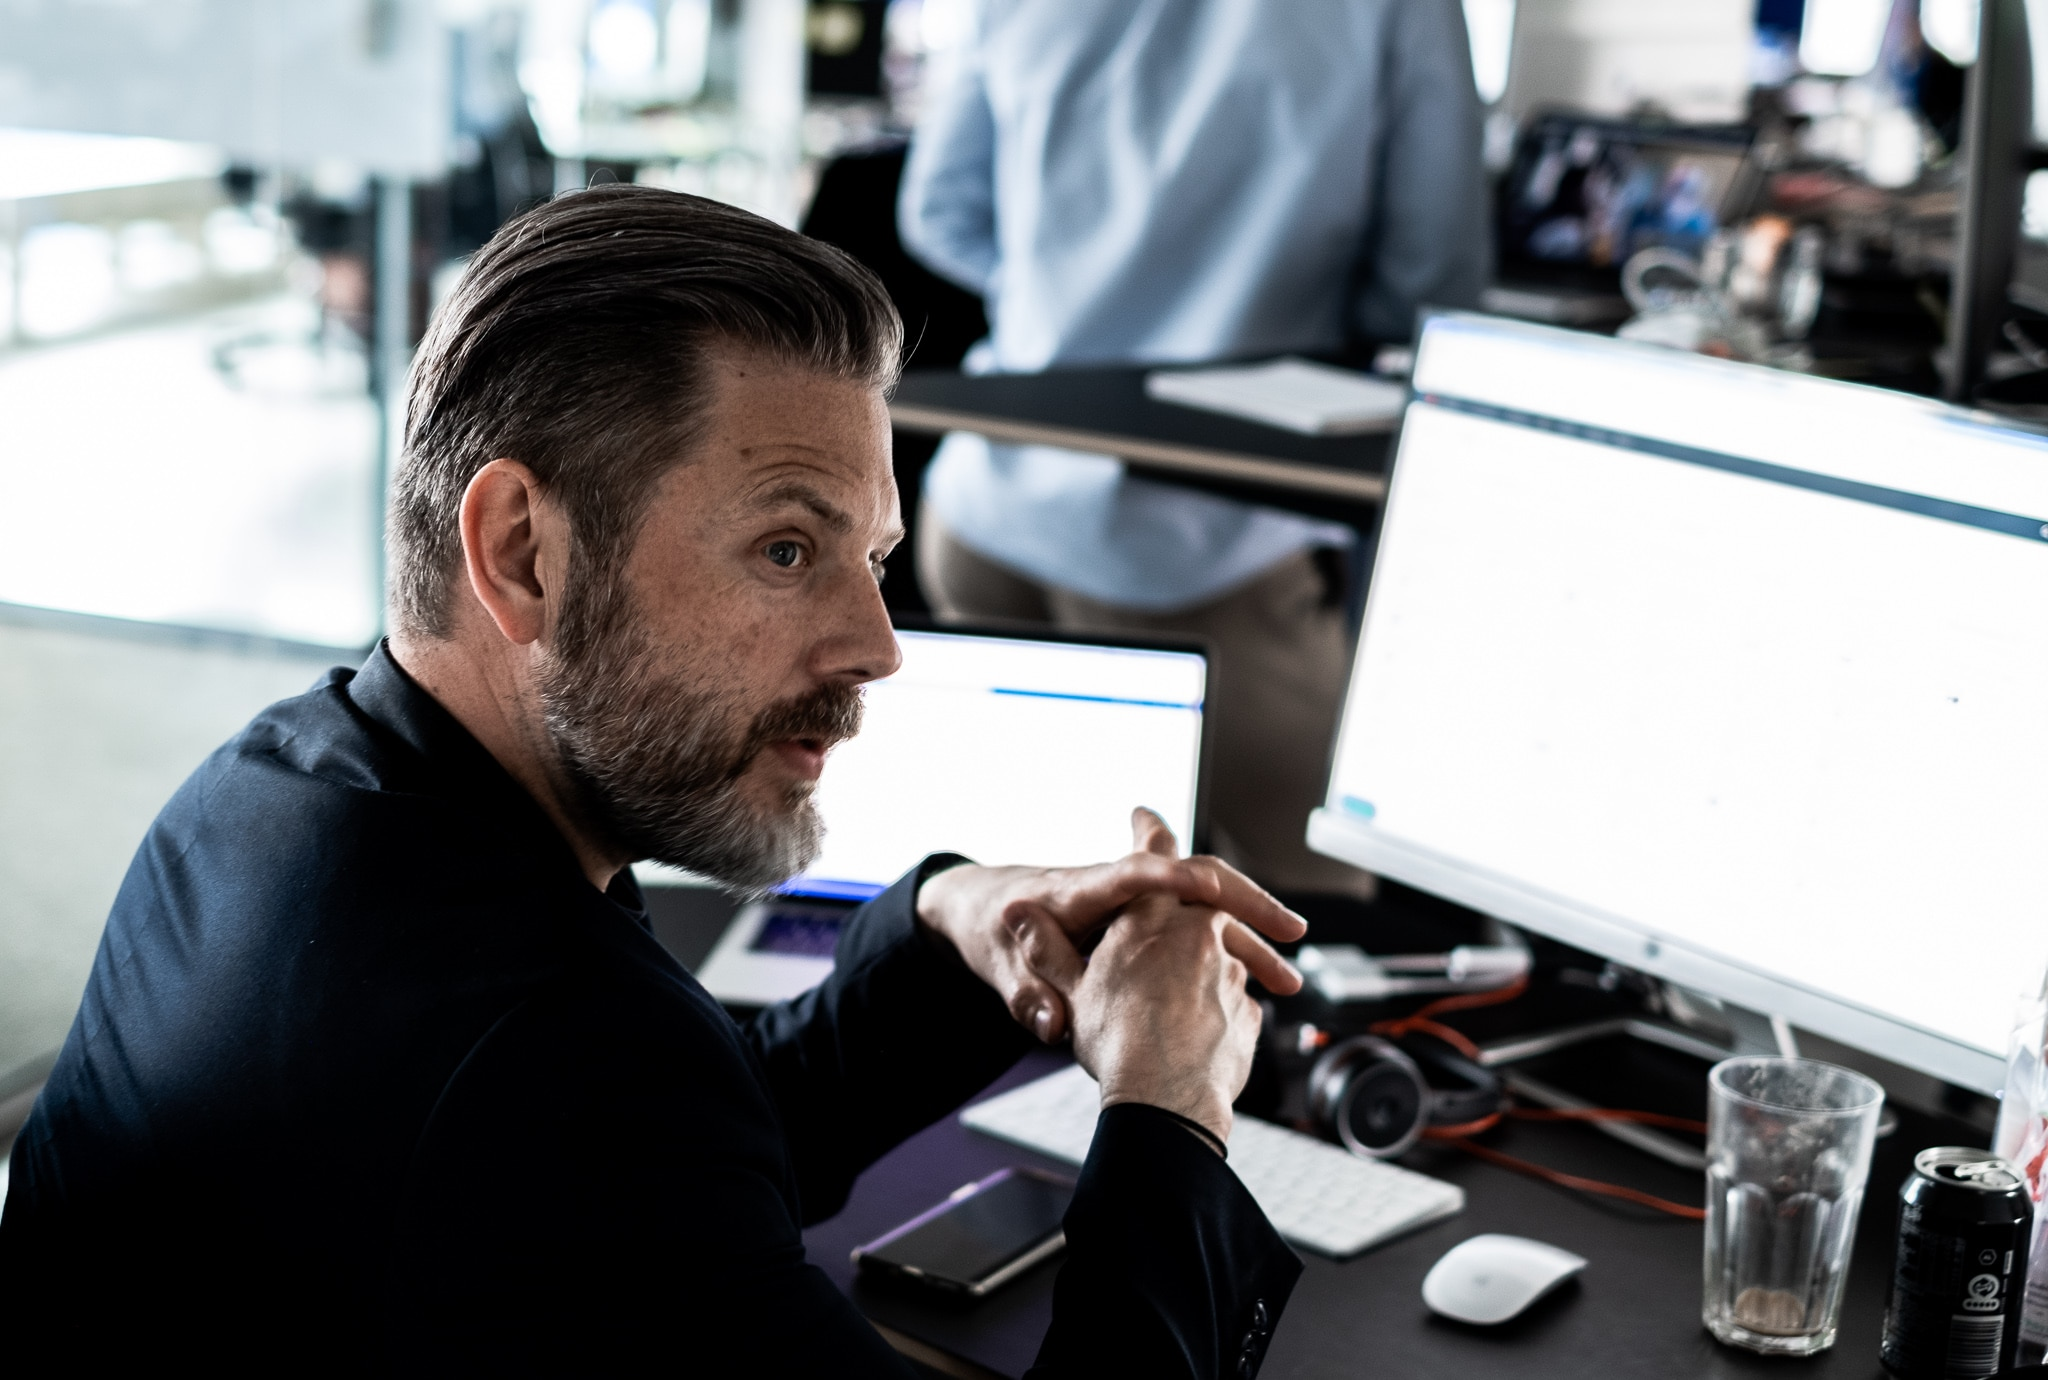 male employee working in front of a screen in an open office space